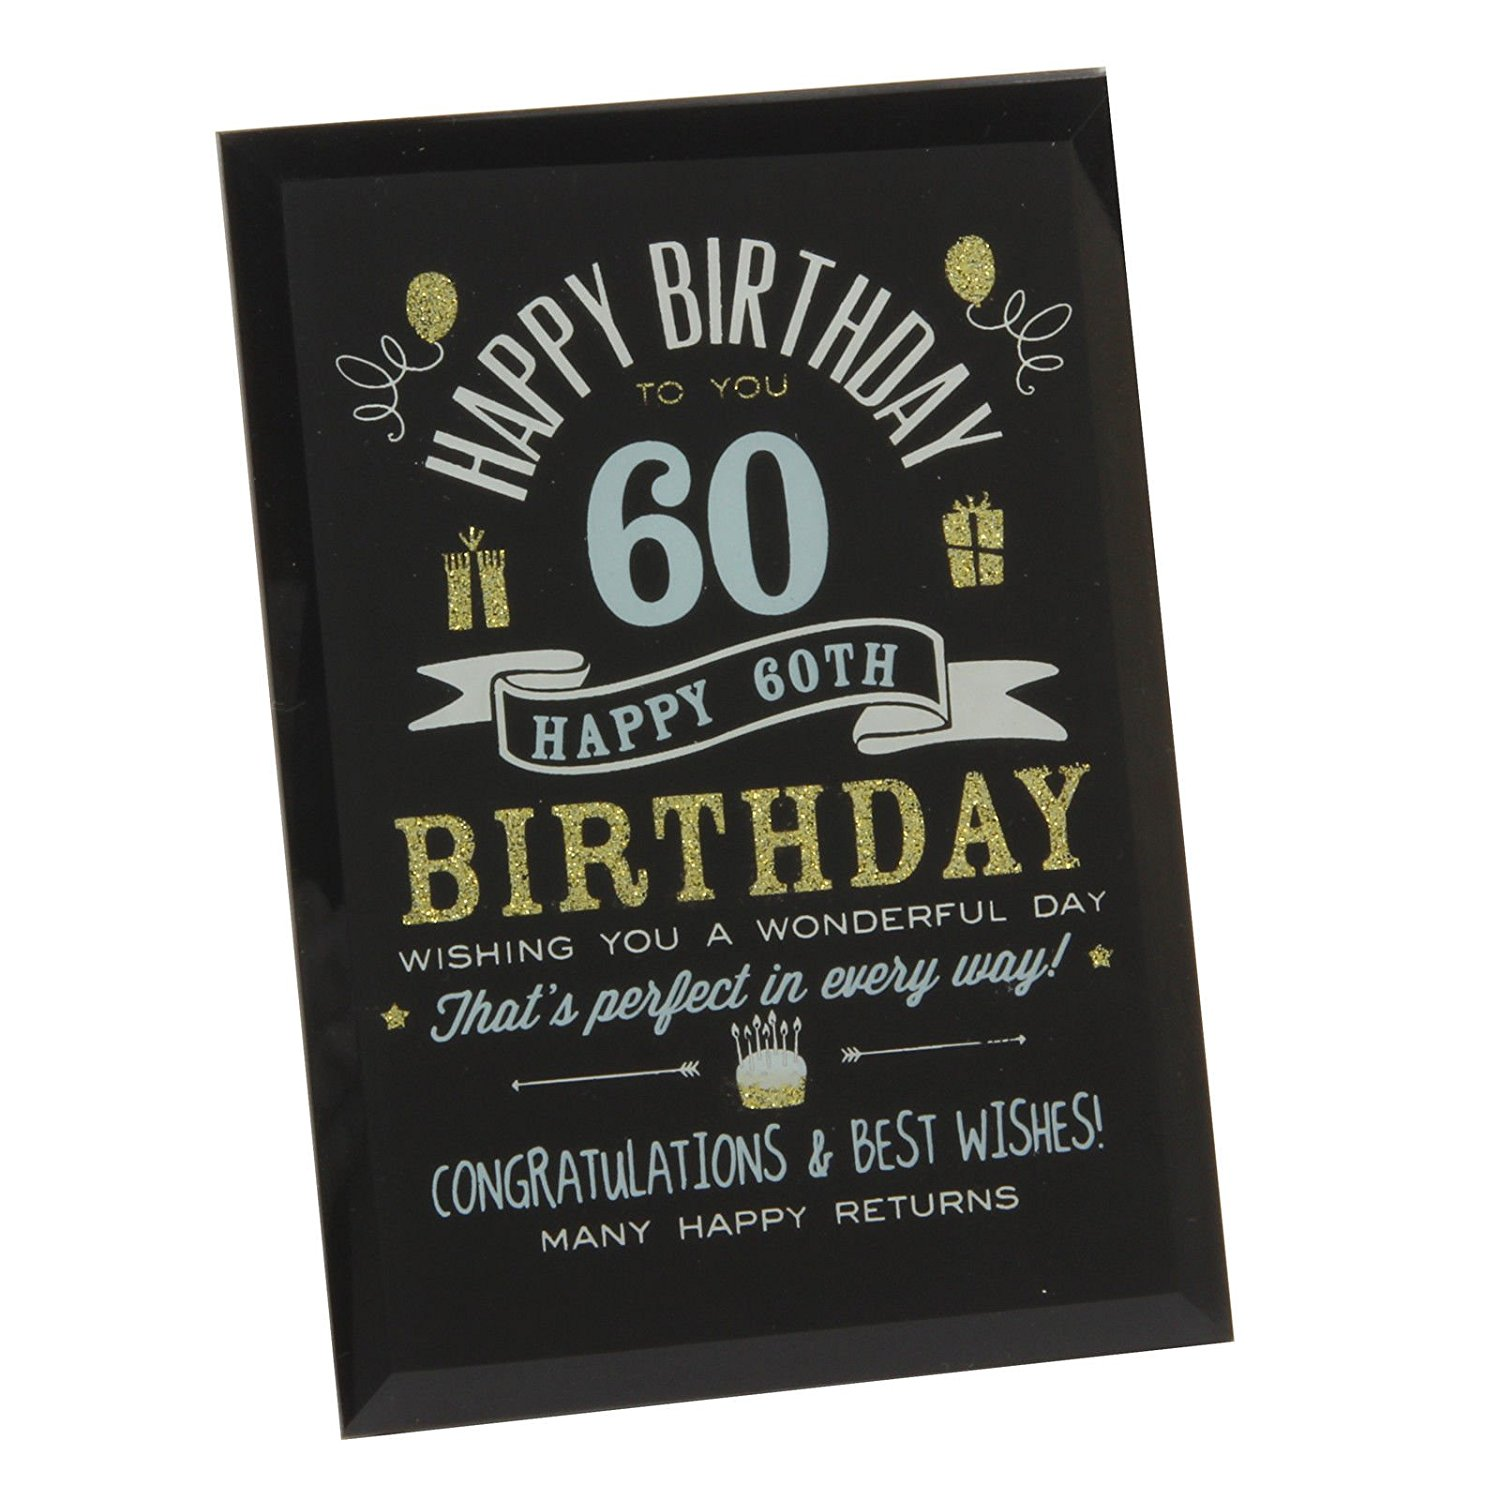 Get Quotations 60Th Birthday Gift Ideas Glass Plaque For Him Her Friends Grandparents